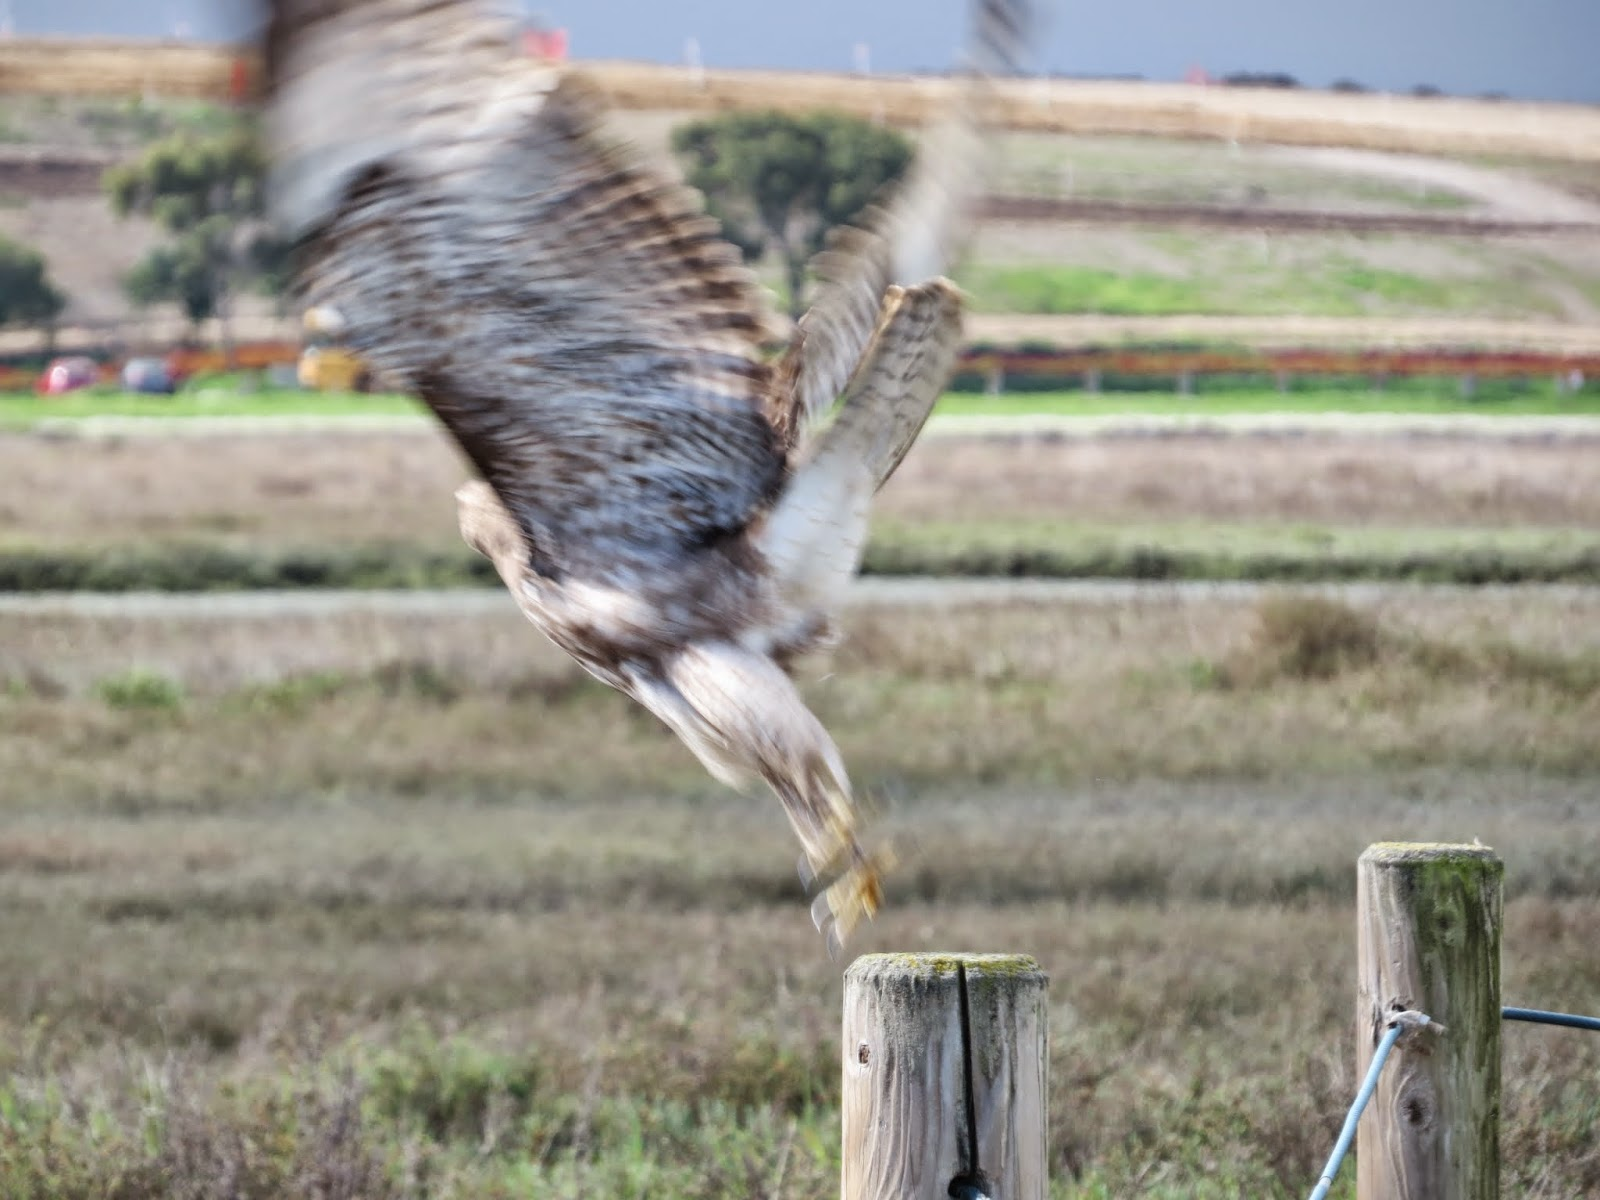 Hawk taking flight at Palo Alto Baylands